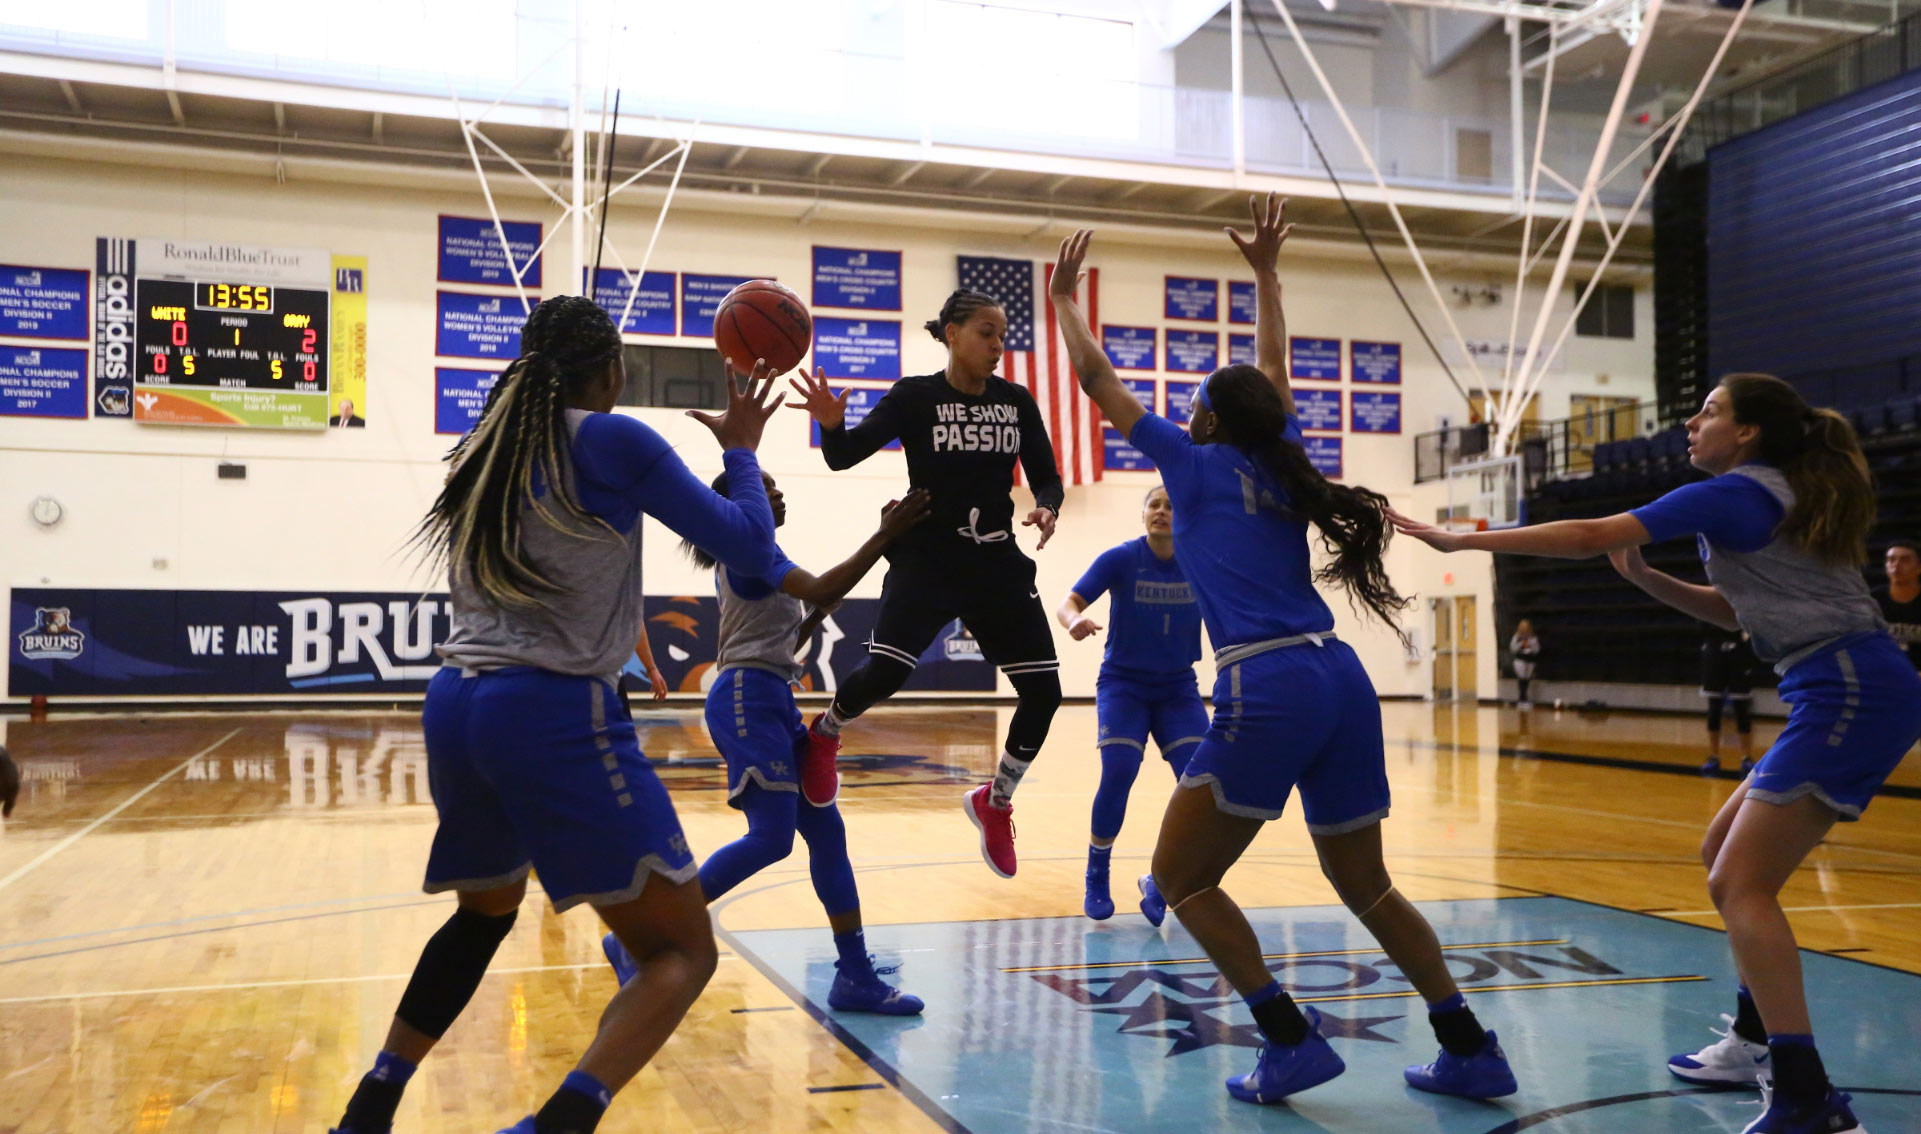 Amber and five of her teammates on the court playing a practice scrimmage.